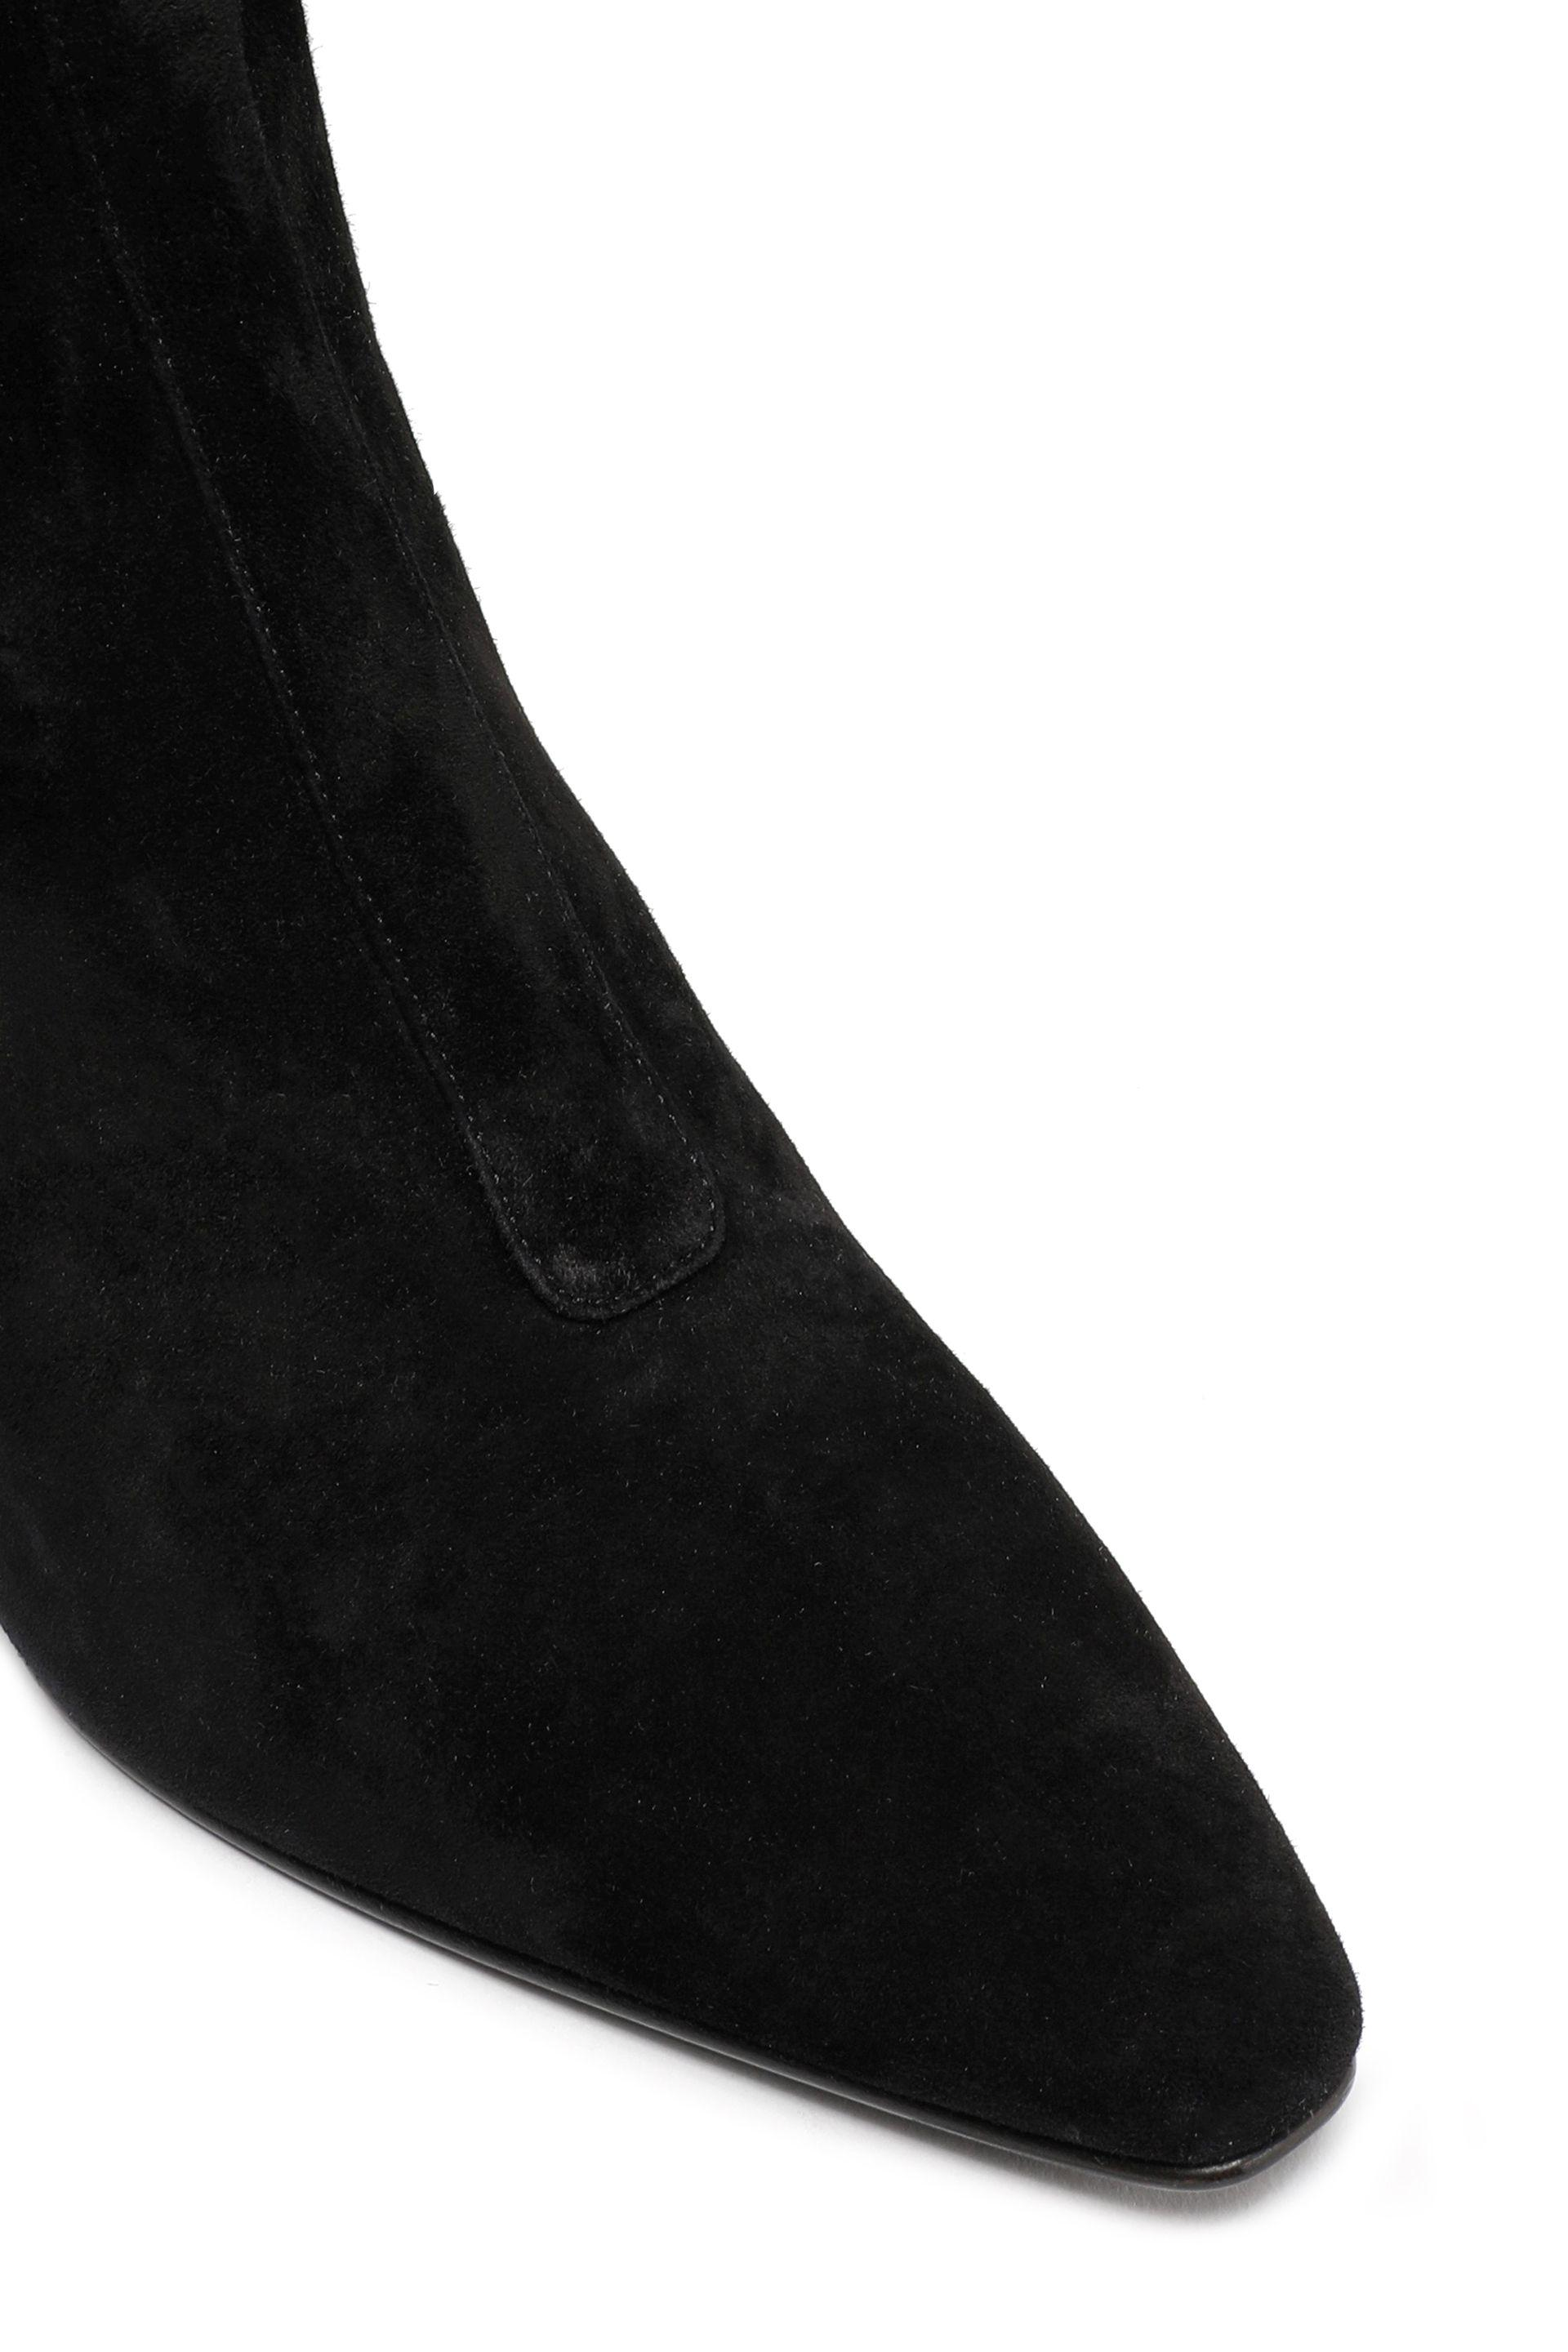 Roger Vivier Patent Leather-trimmed Suede Boots Black